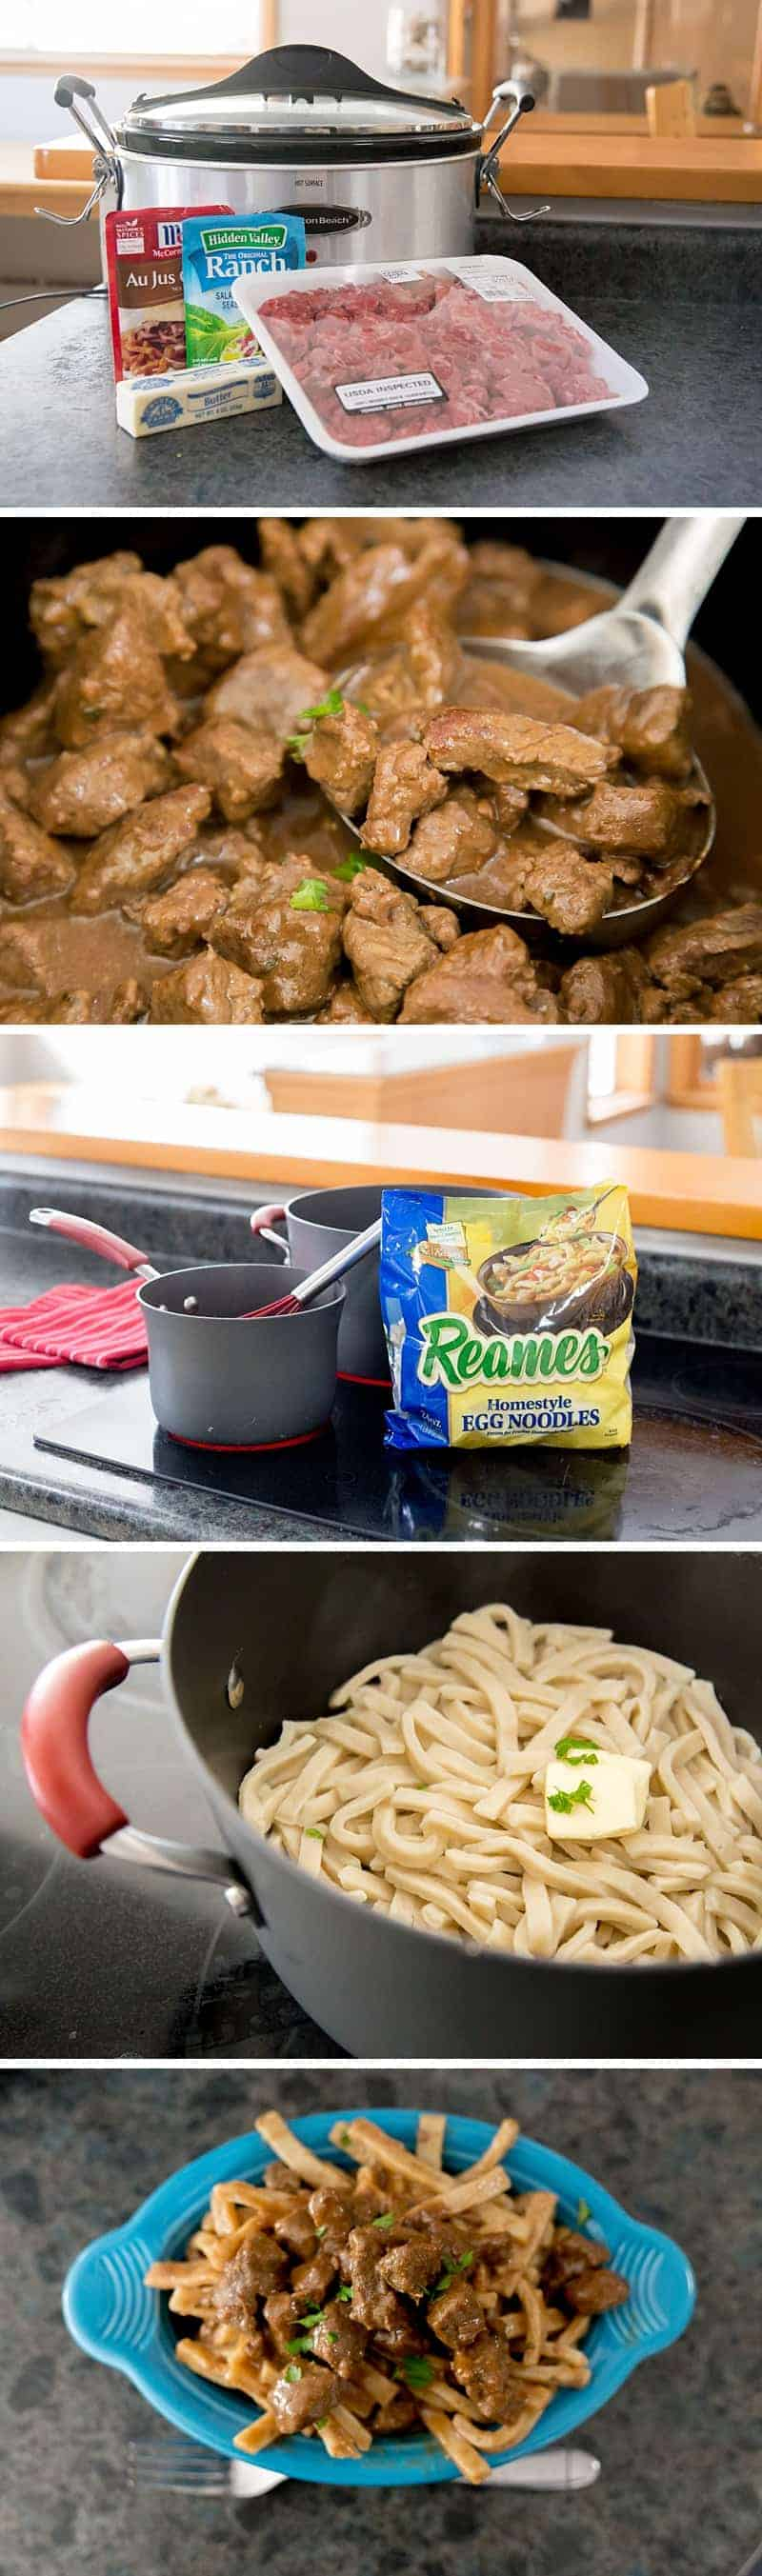 The flavorful Slow Cooker Beef Stew is a super easy weekday dinner recipe, but is also perfect for a family get together. This classic crock pot recipe is transformed with a few unexpected ingredients (Hint: it is not what you expect). Served with frozen egg noodles, it is the perfect winter meal. Comfort in a bowl. *My family REALLY liked this one!